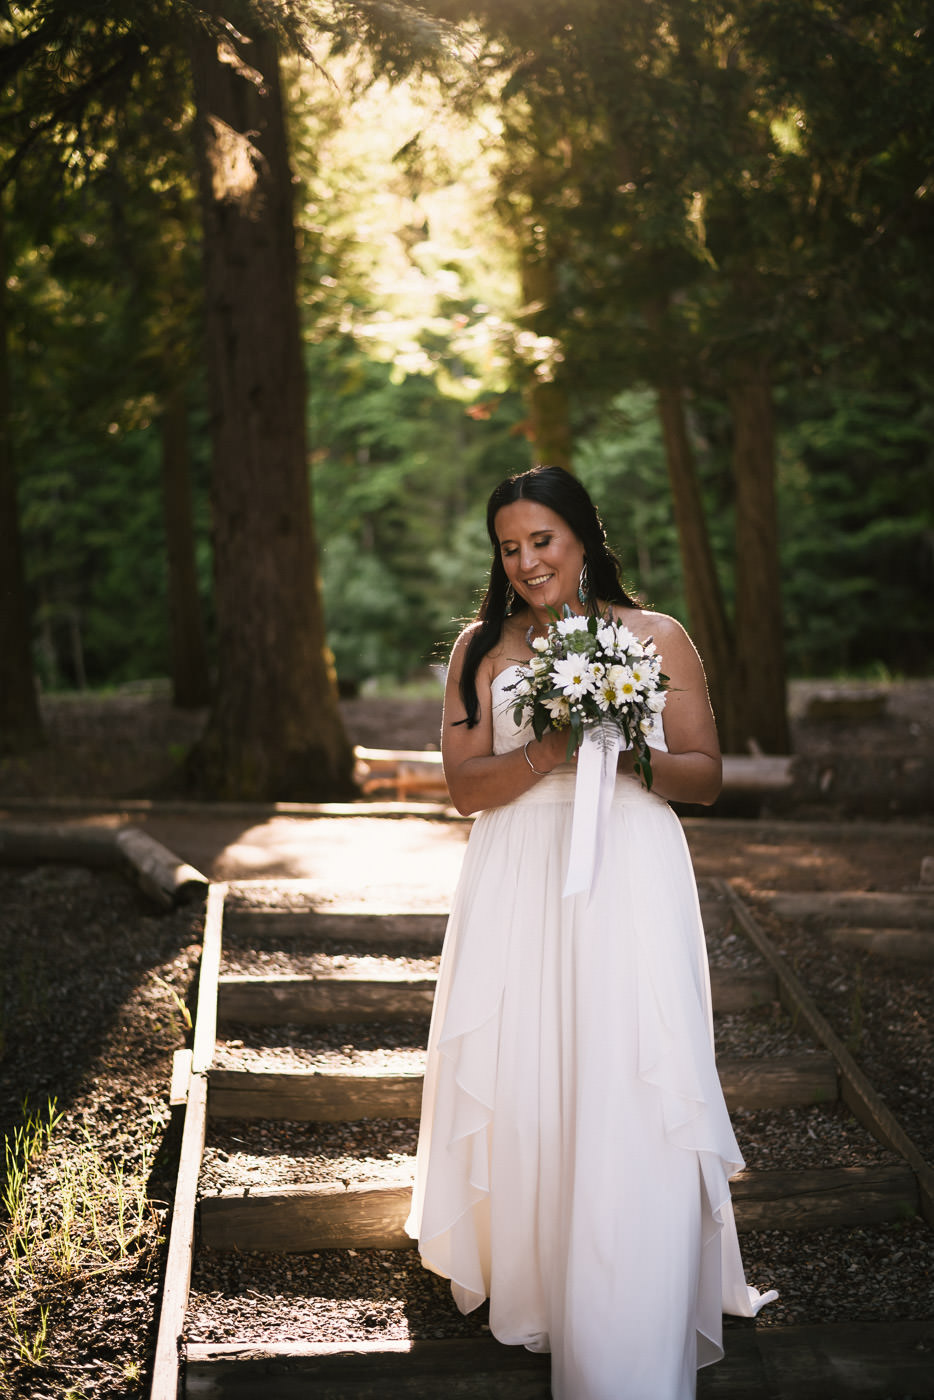 Bride walks down the path to her wedding ceremony at Lake Mcdonald.